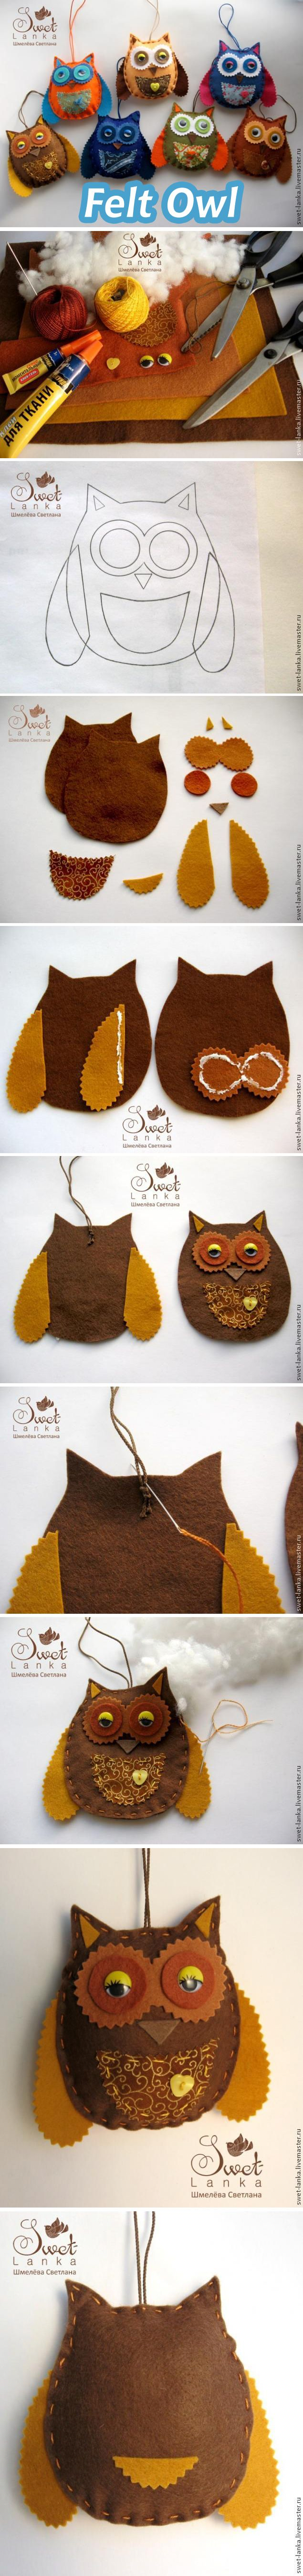 How to make a felt owl / Мастер-класс: сова из фетра #diy #howto #tutorial